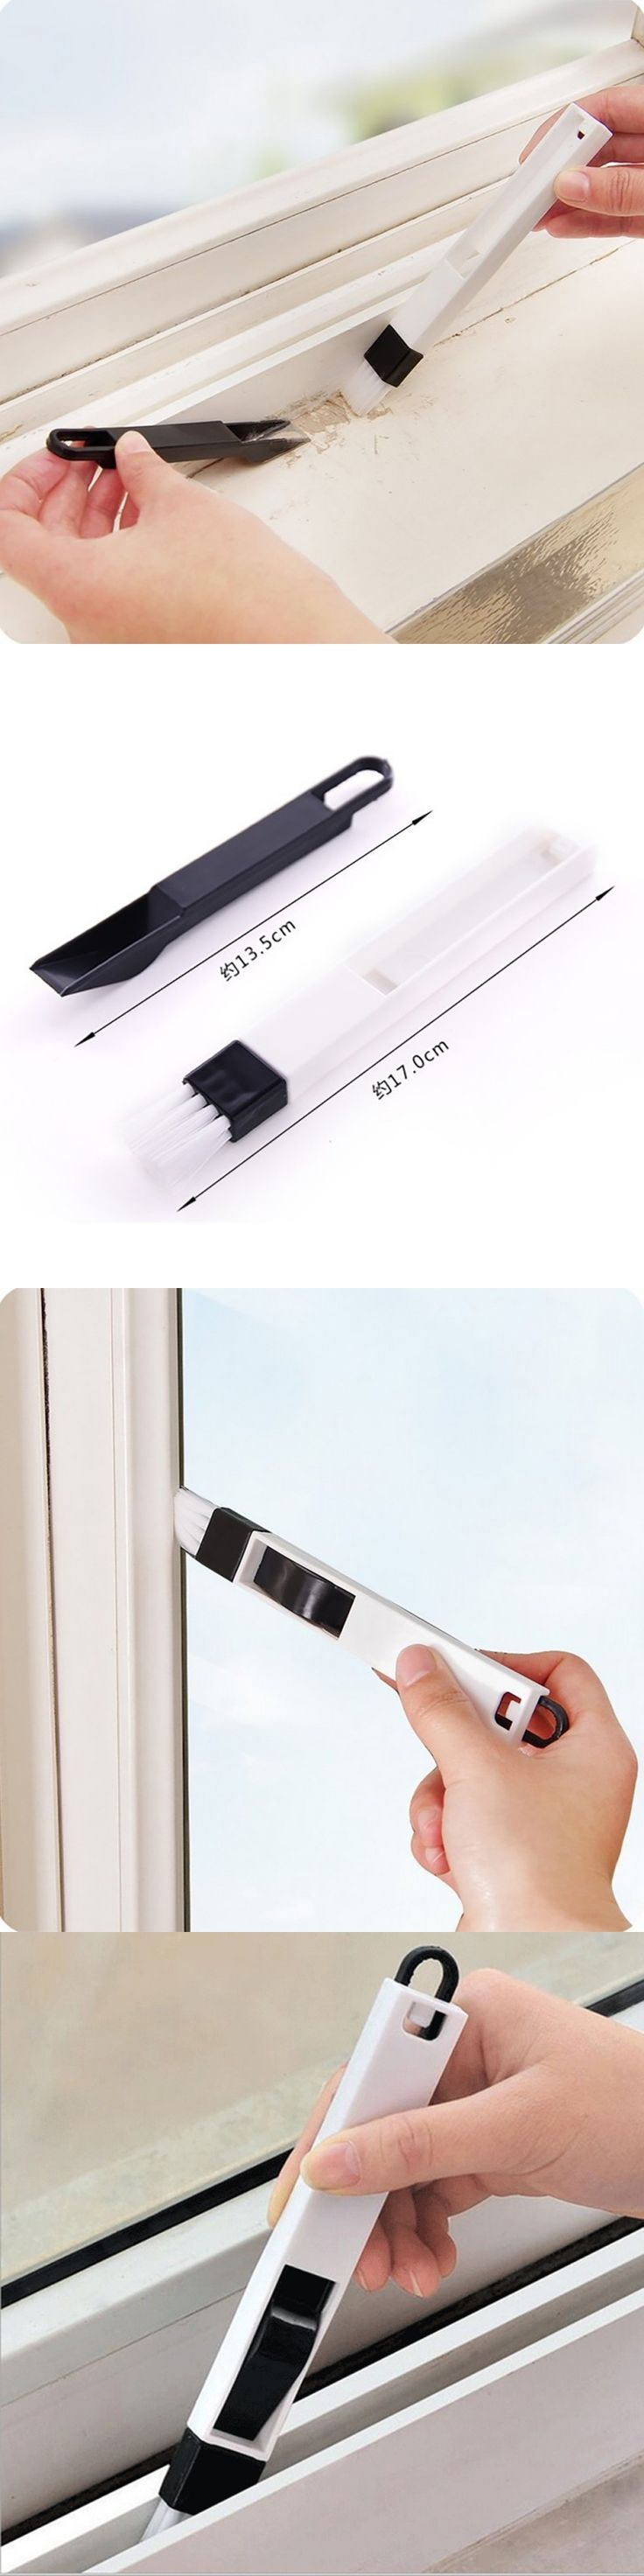 1pcs Windows recess groove  wash screens keyboard cleaning brush crevice brush with dustpan cleaning tool